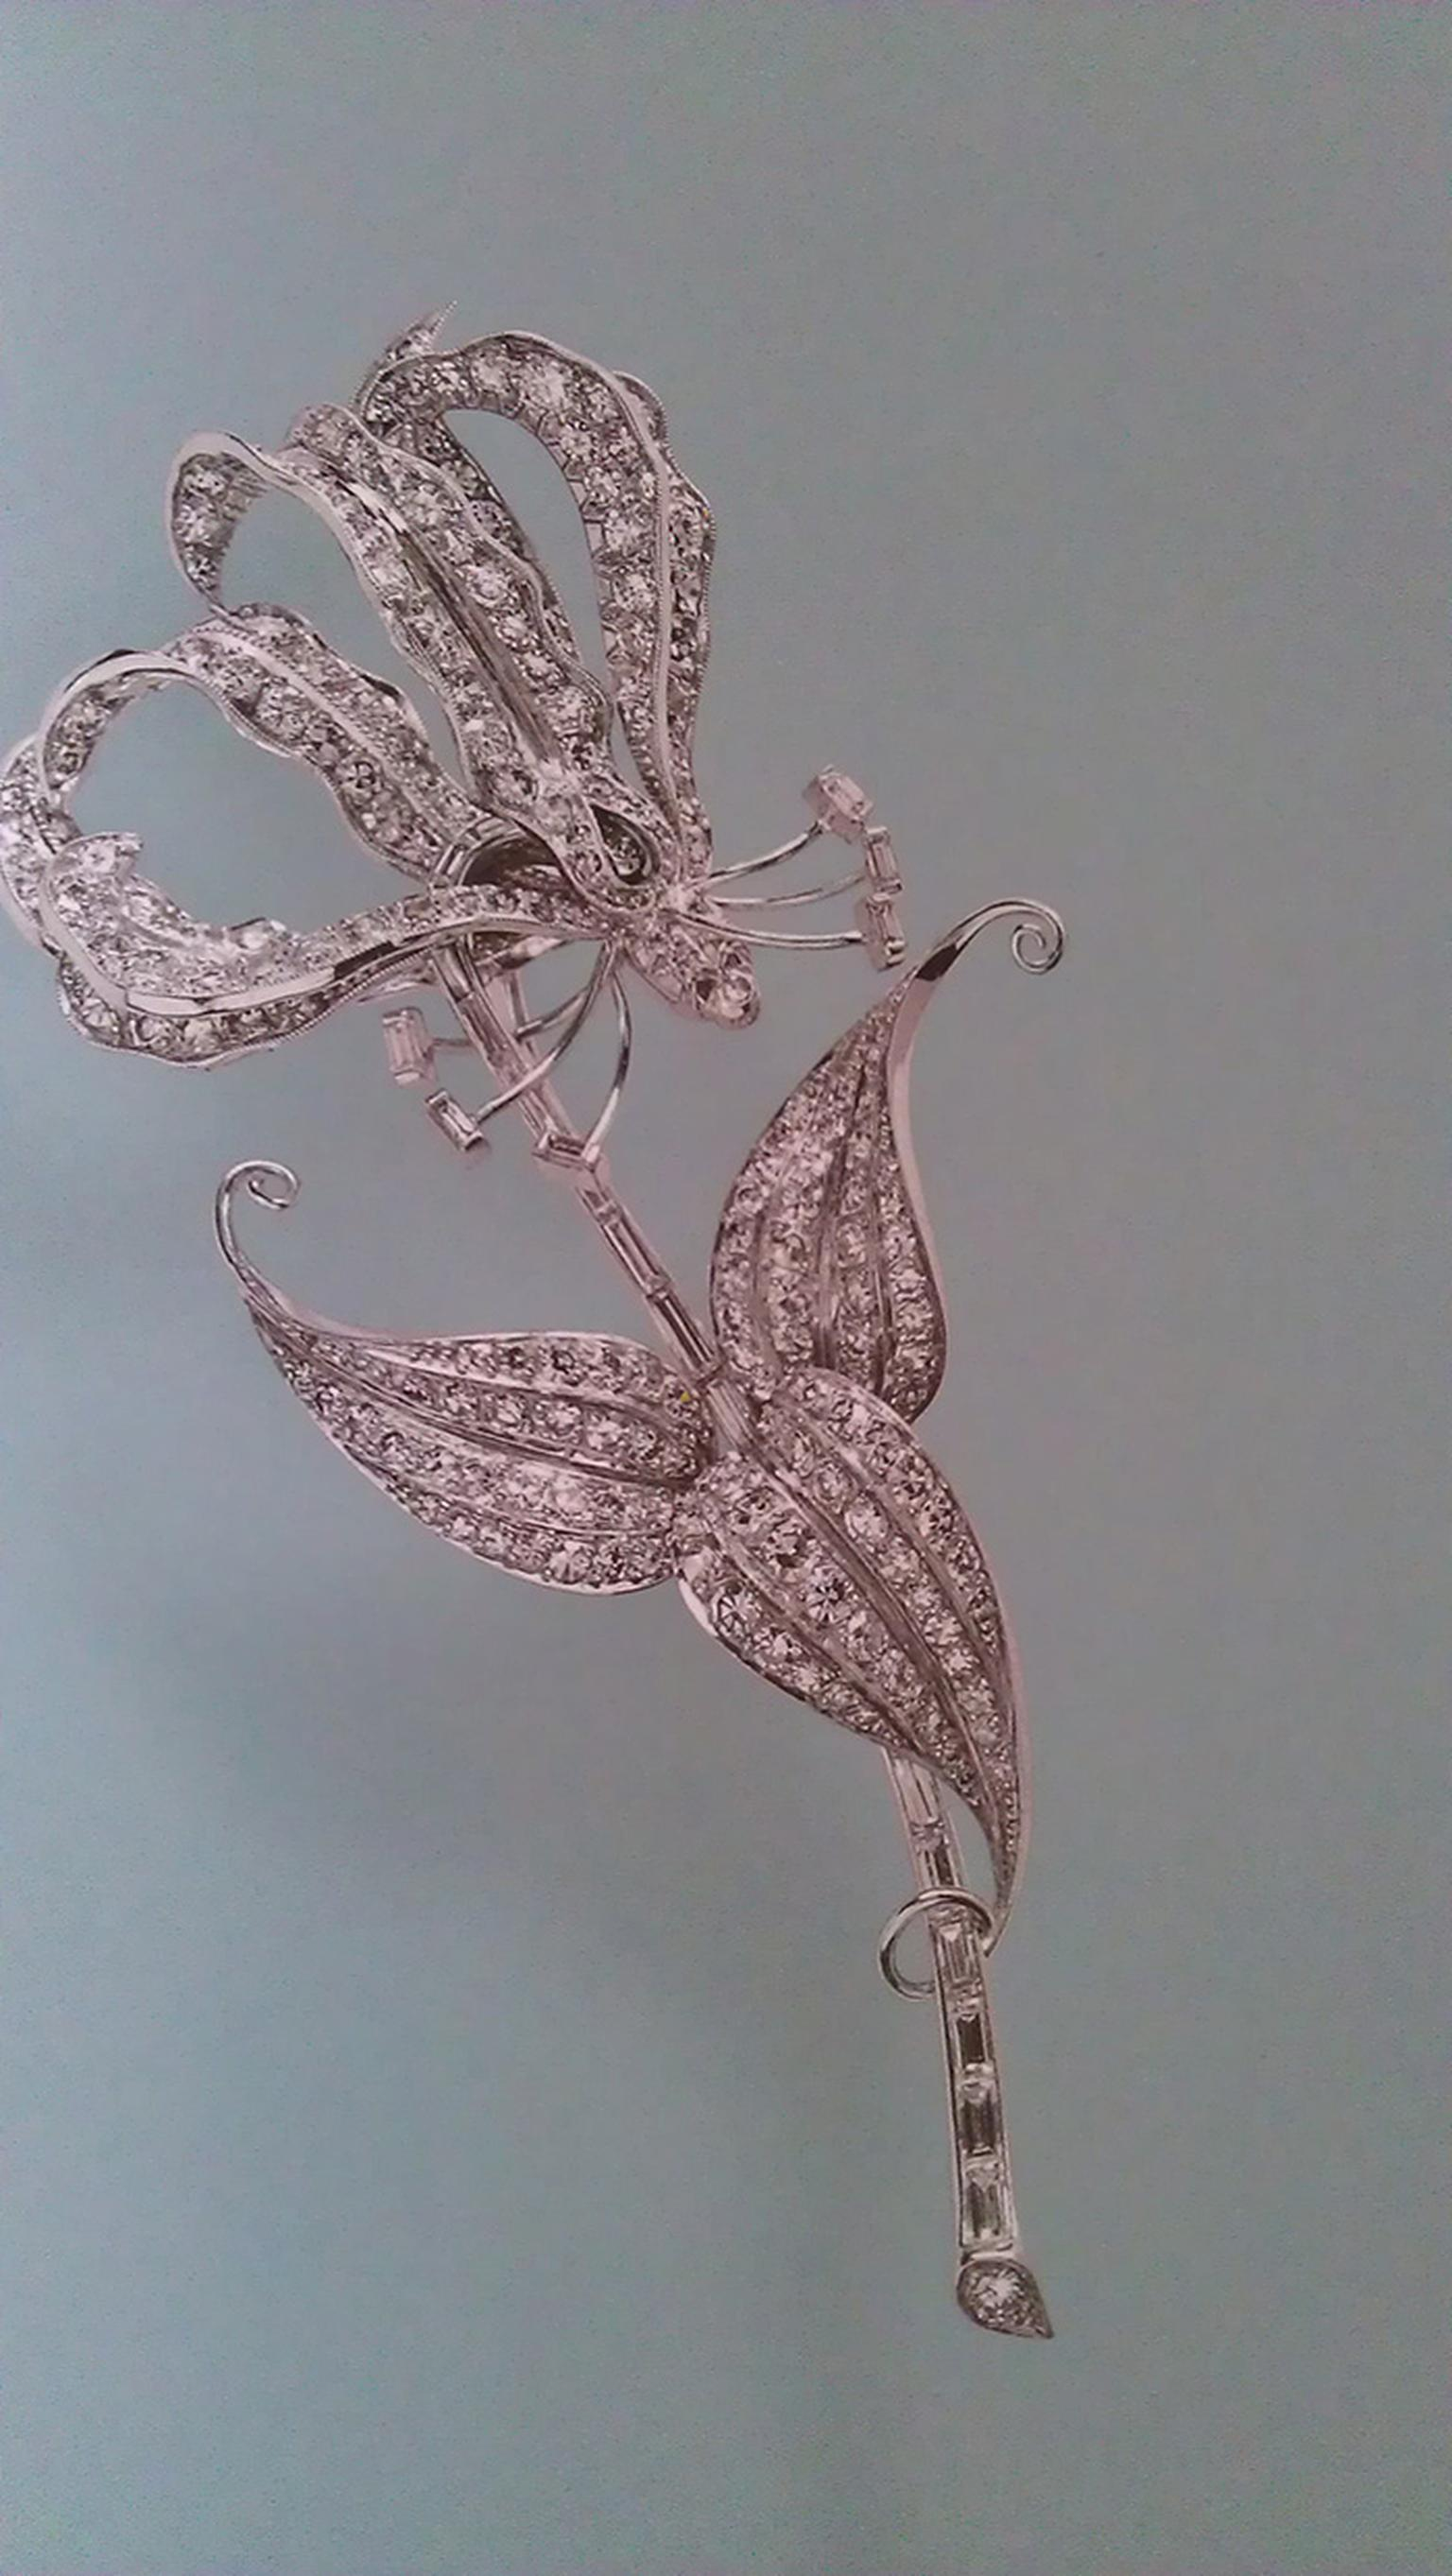 Flame Lily brooch belonging to the Queen